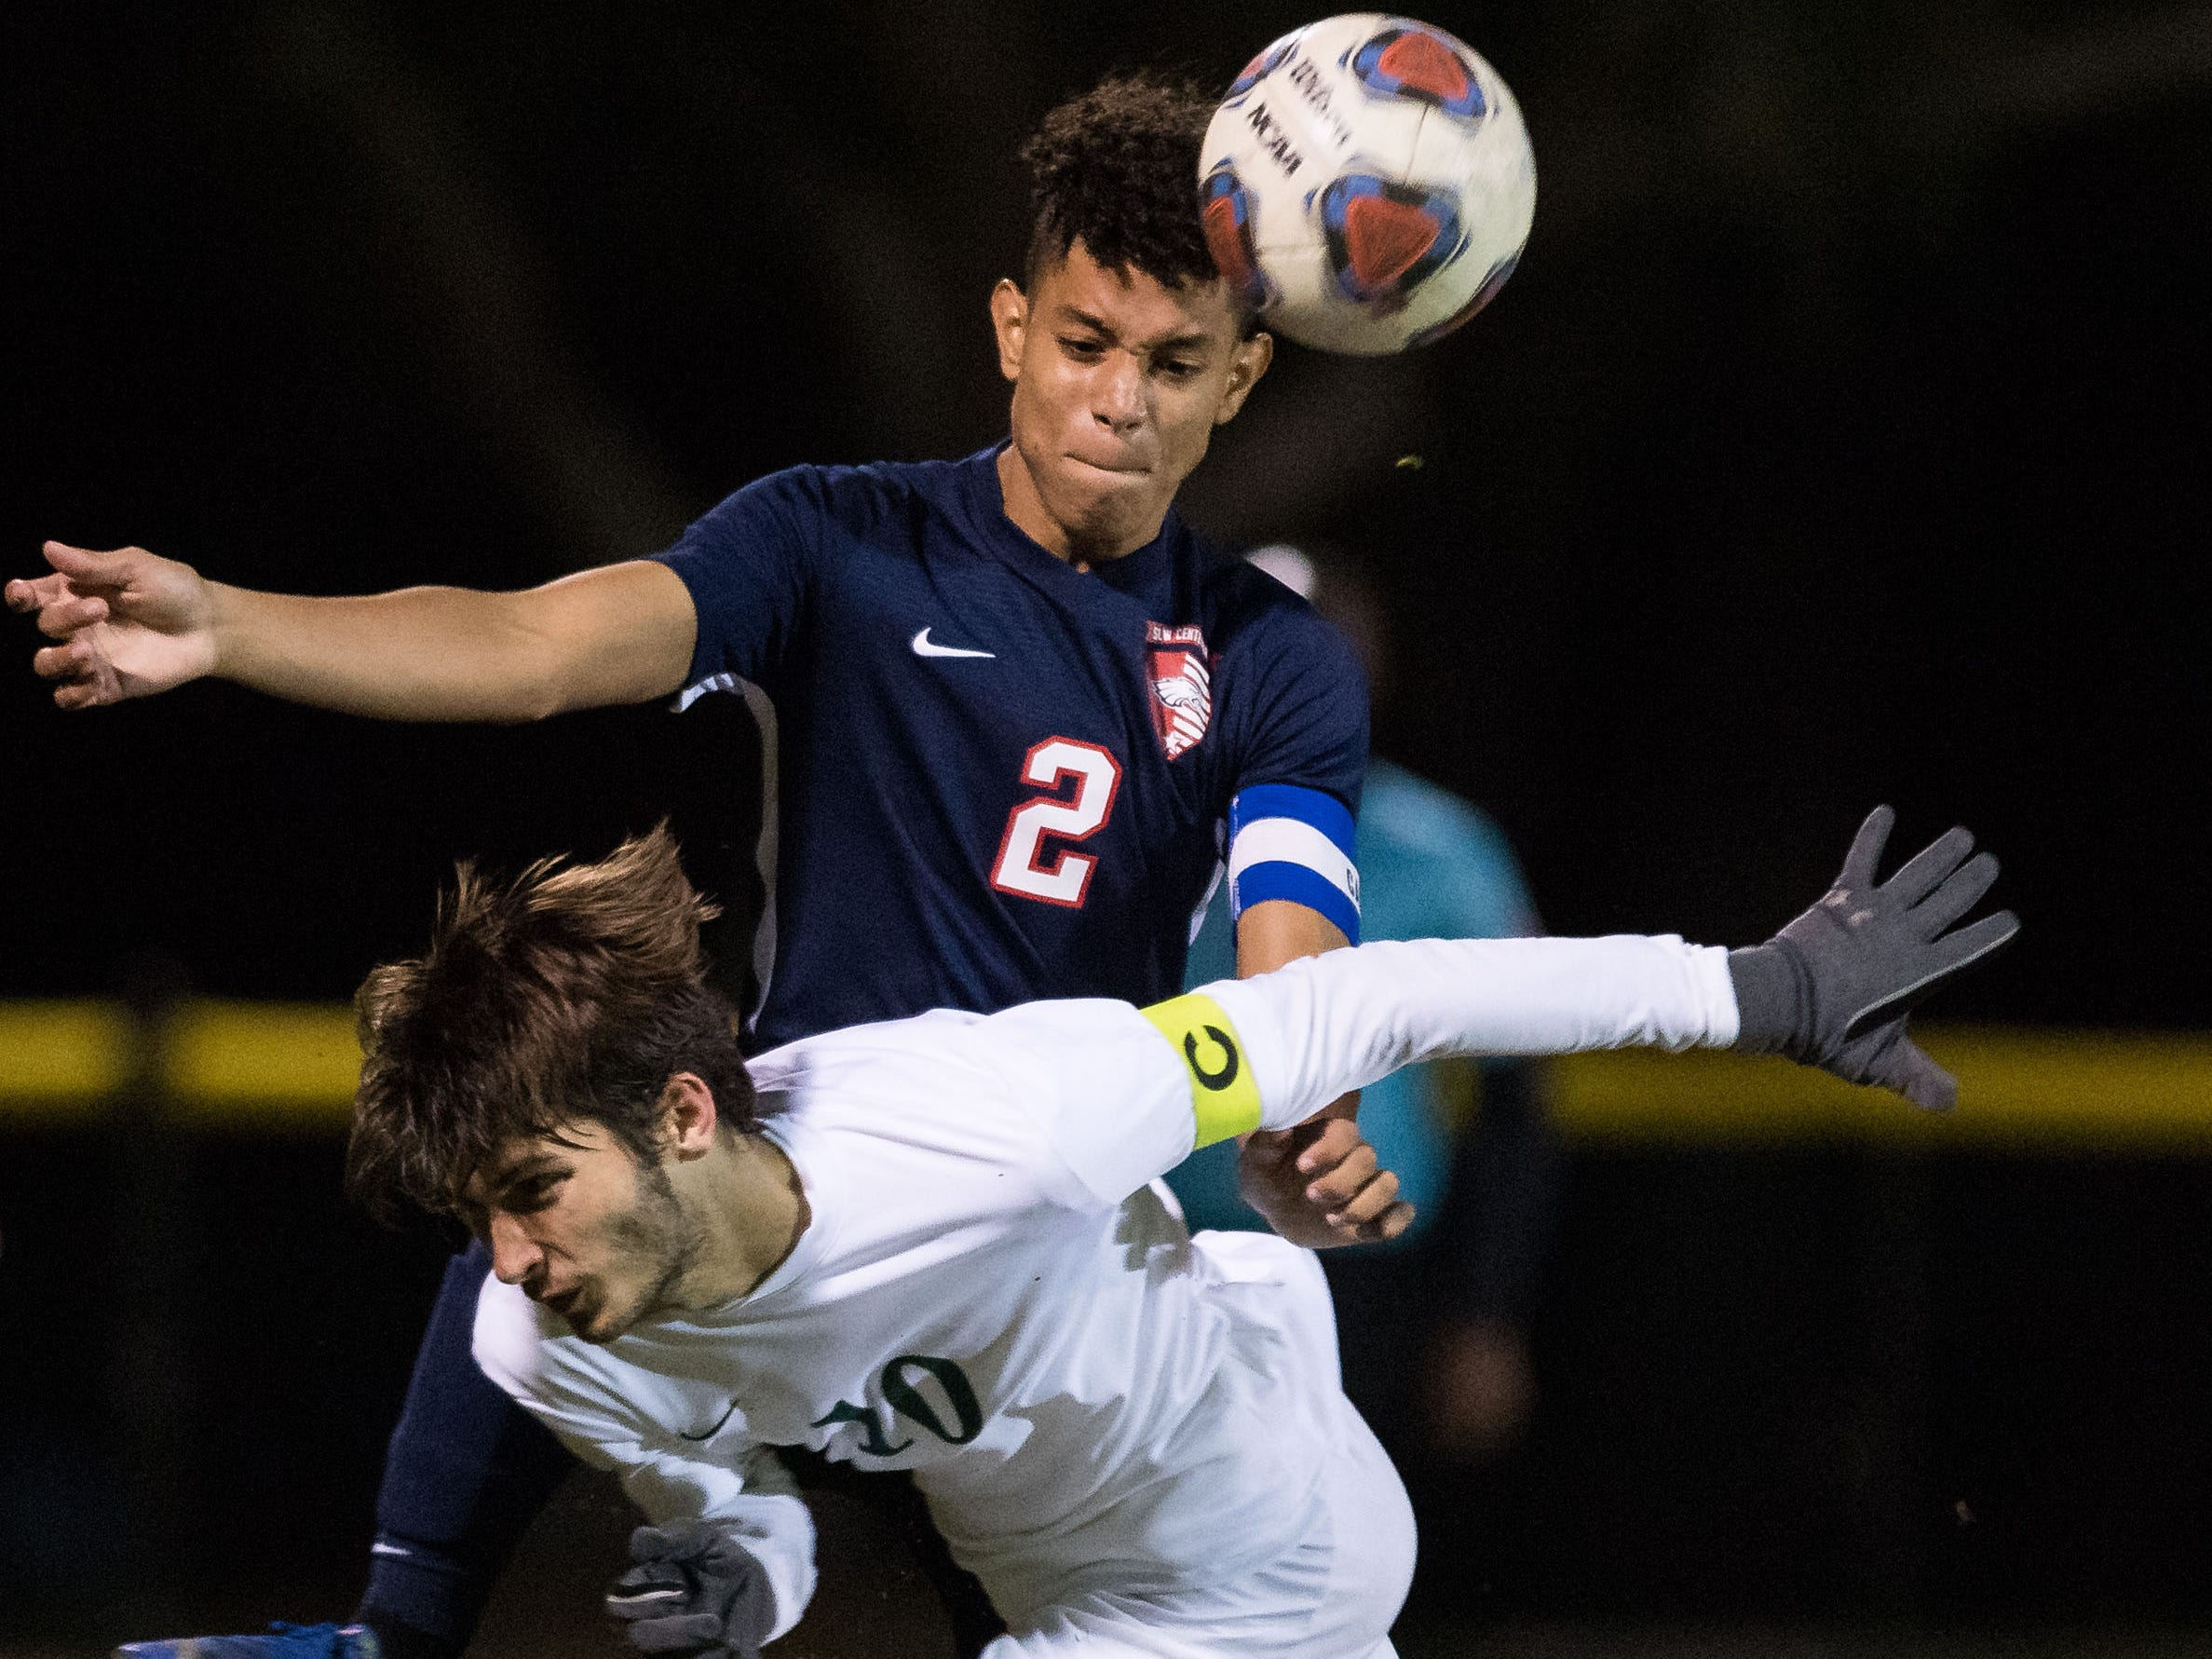 St. Lucie West Centennial defender Norland Rivera (top) clears the ball from in front of the goal past Jupiter's Eddie Matot during the second half of the high school boys soccer District 10-5A championship game Friday, Feb. 1, 2019, at South County Regional Stadium in Port St. Lucie.